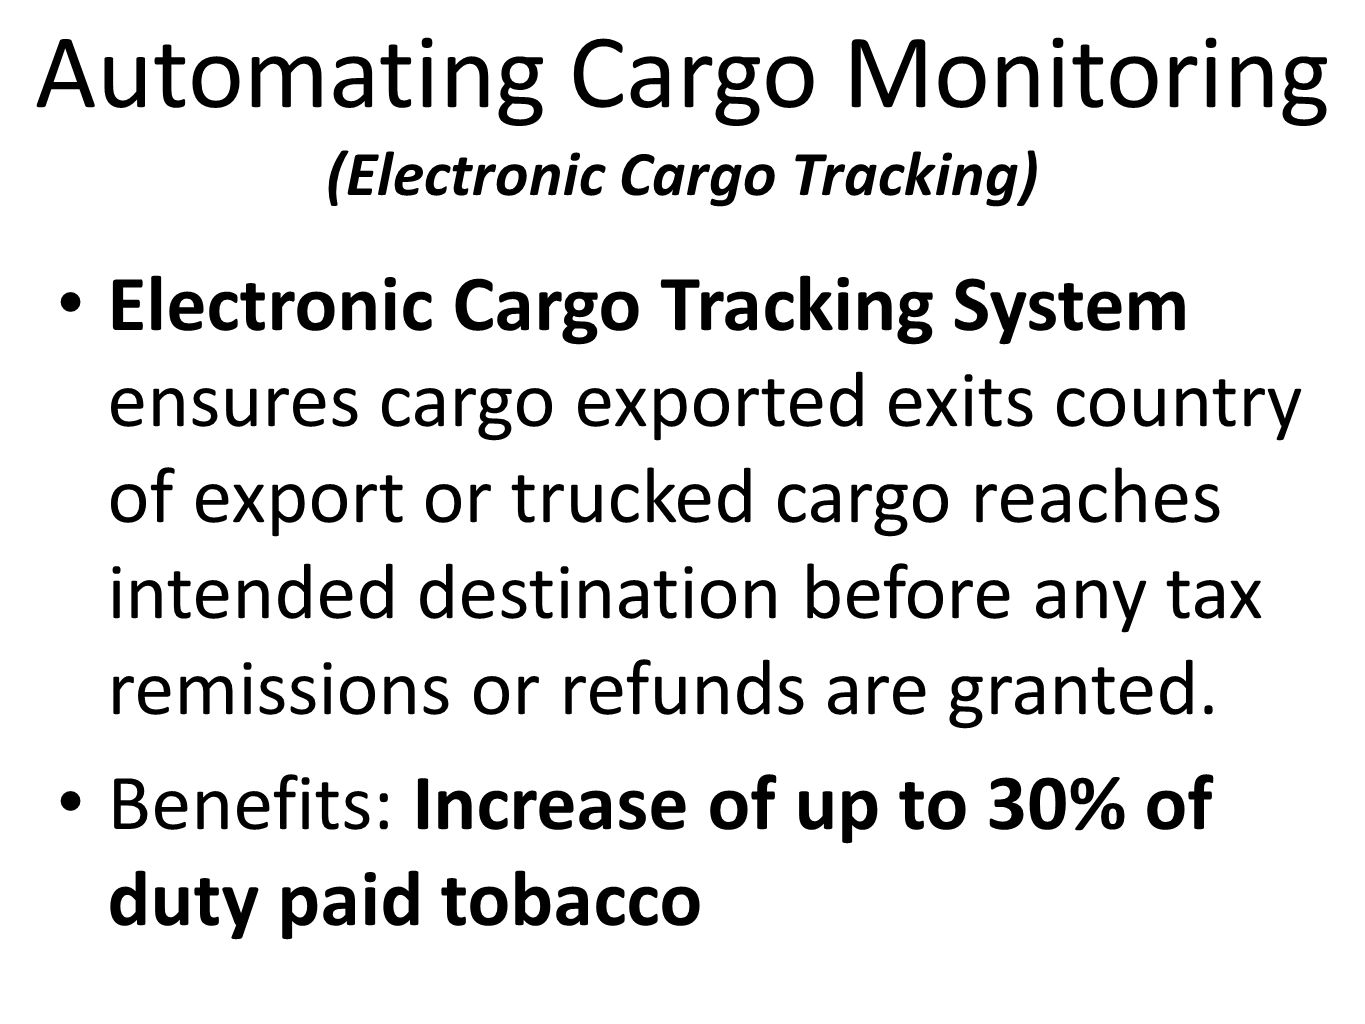 Automating Cargo Monitoring (Electronic Cargo Tracking)